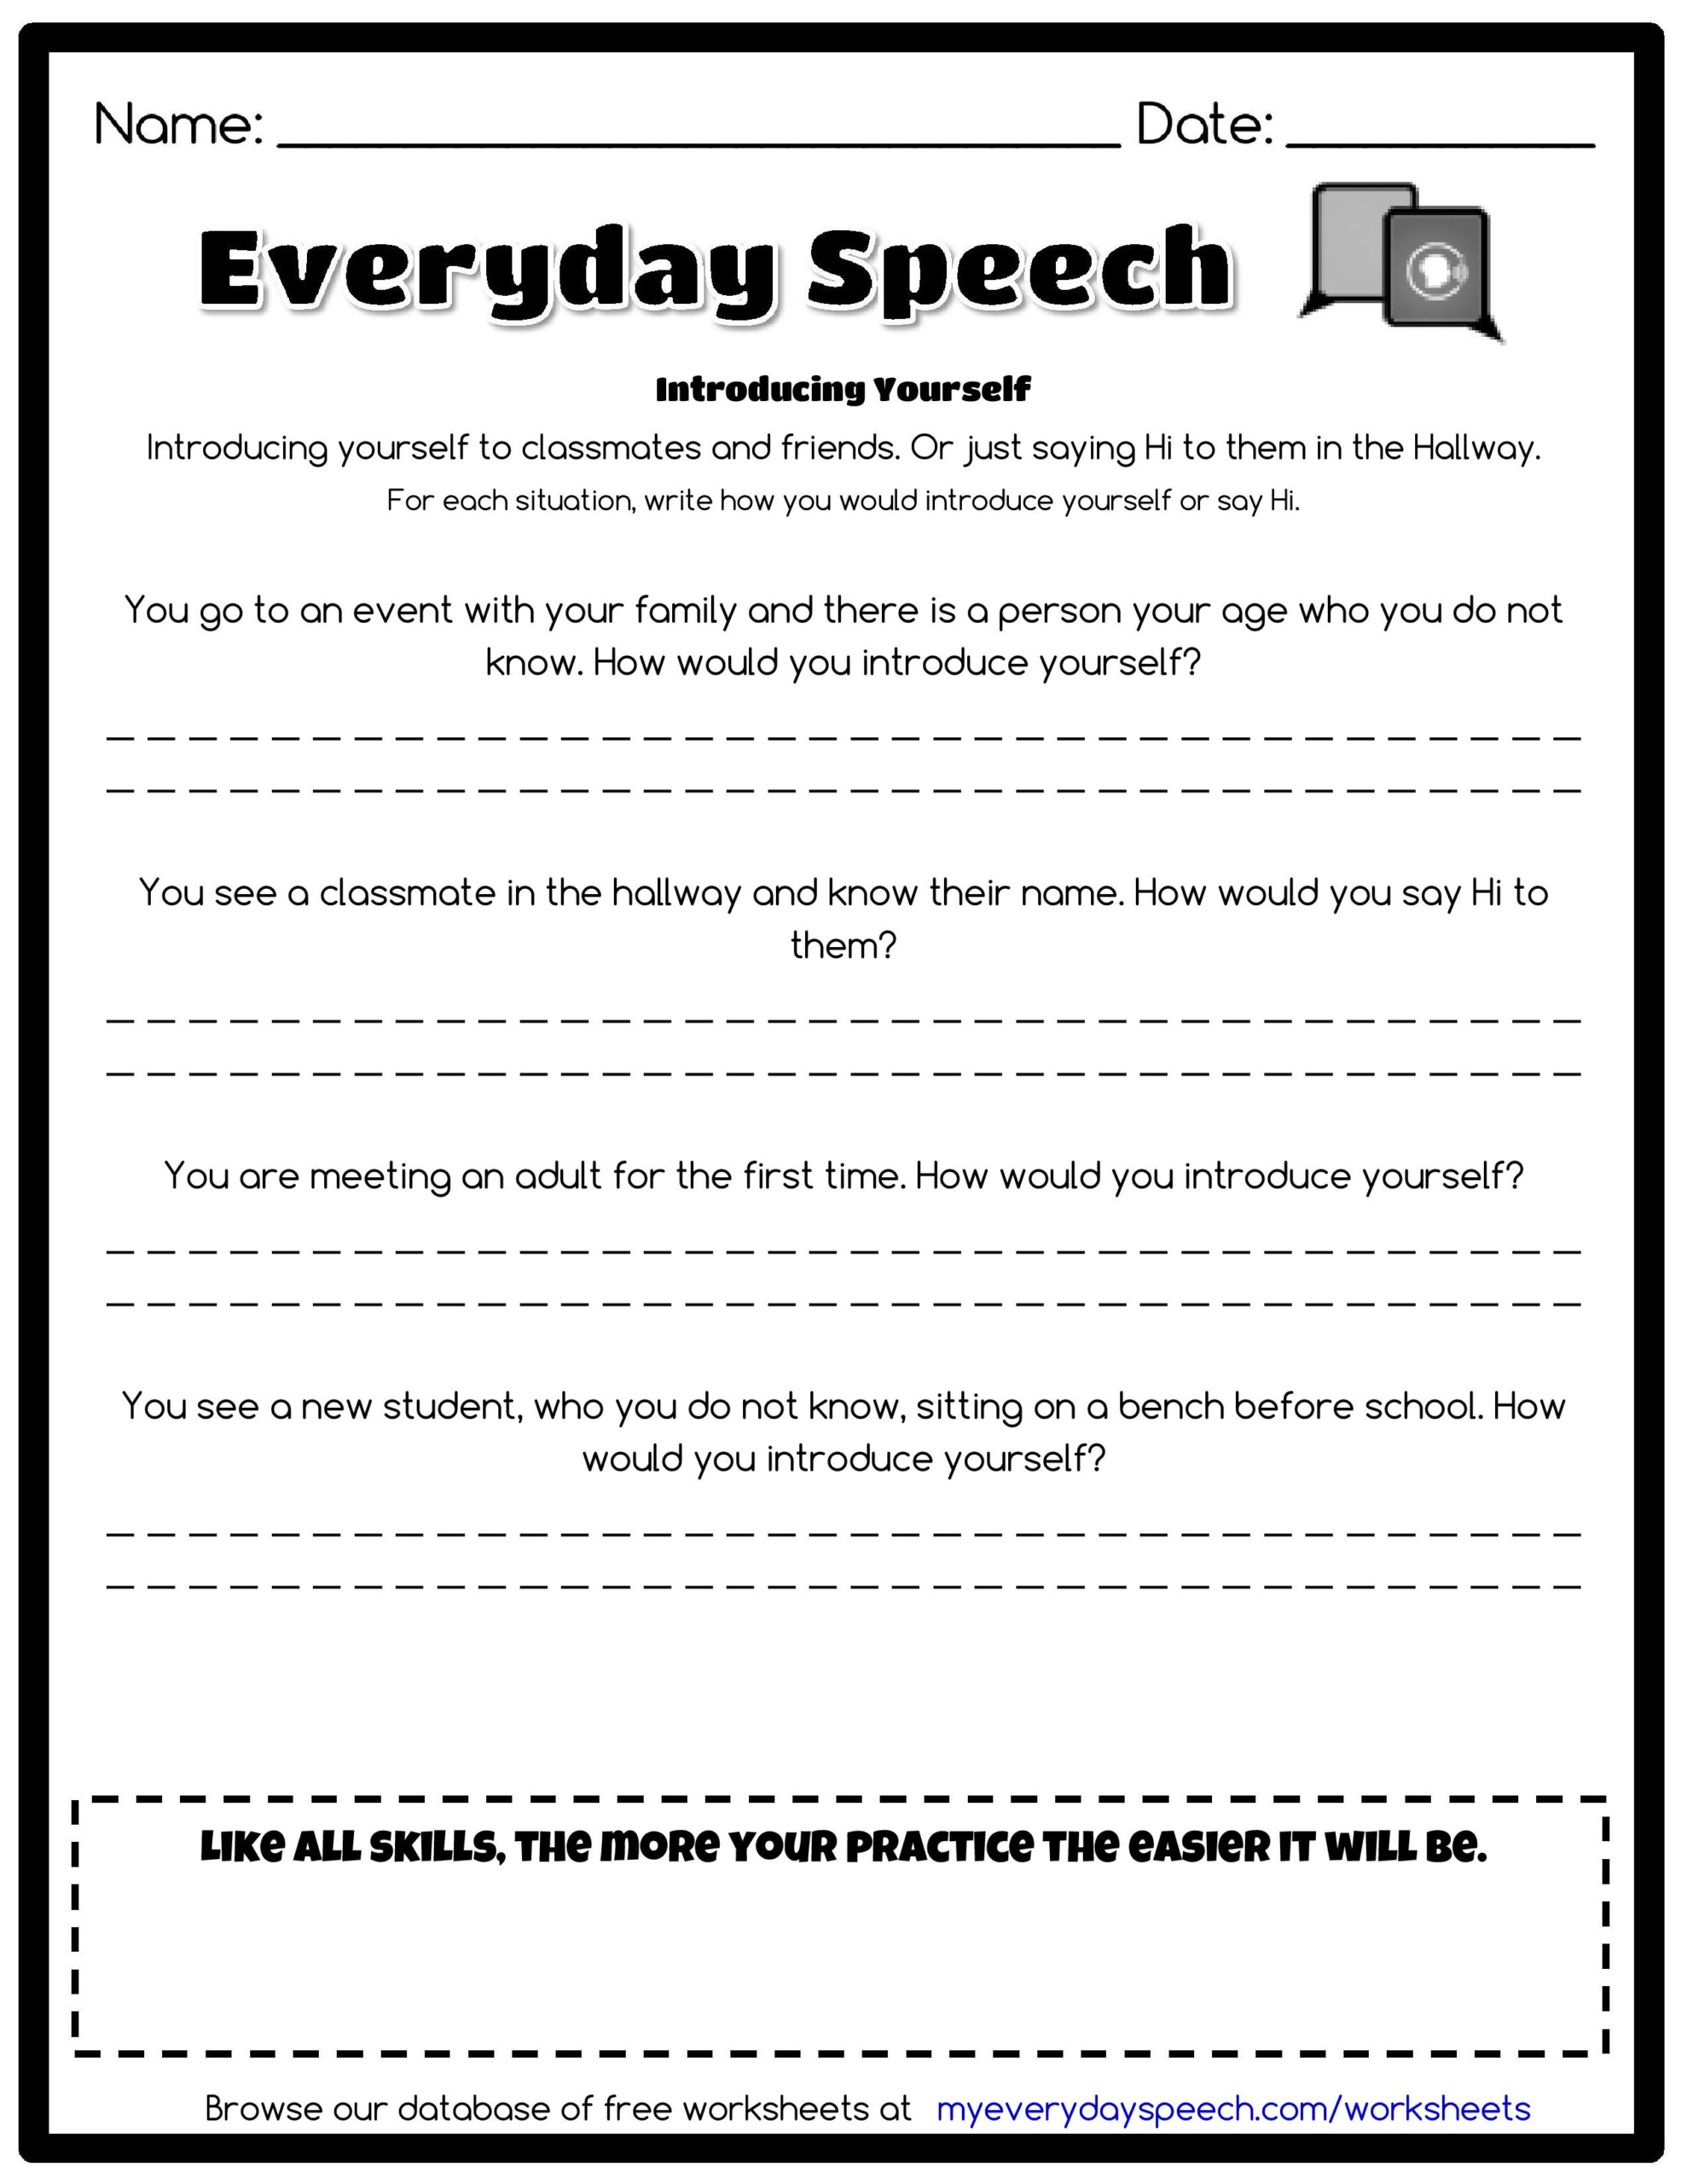 Check Out The Worksheet I Just Made Using Everyday Speech's